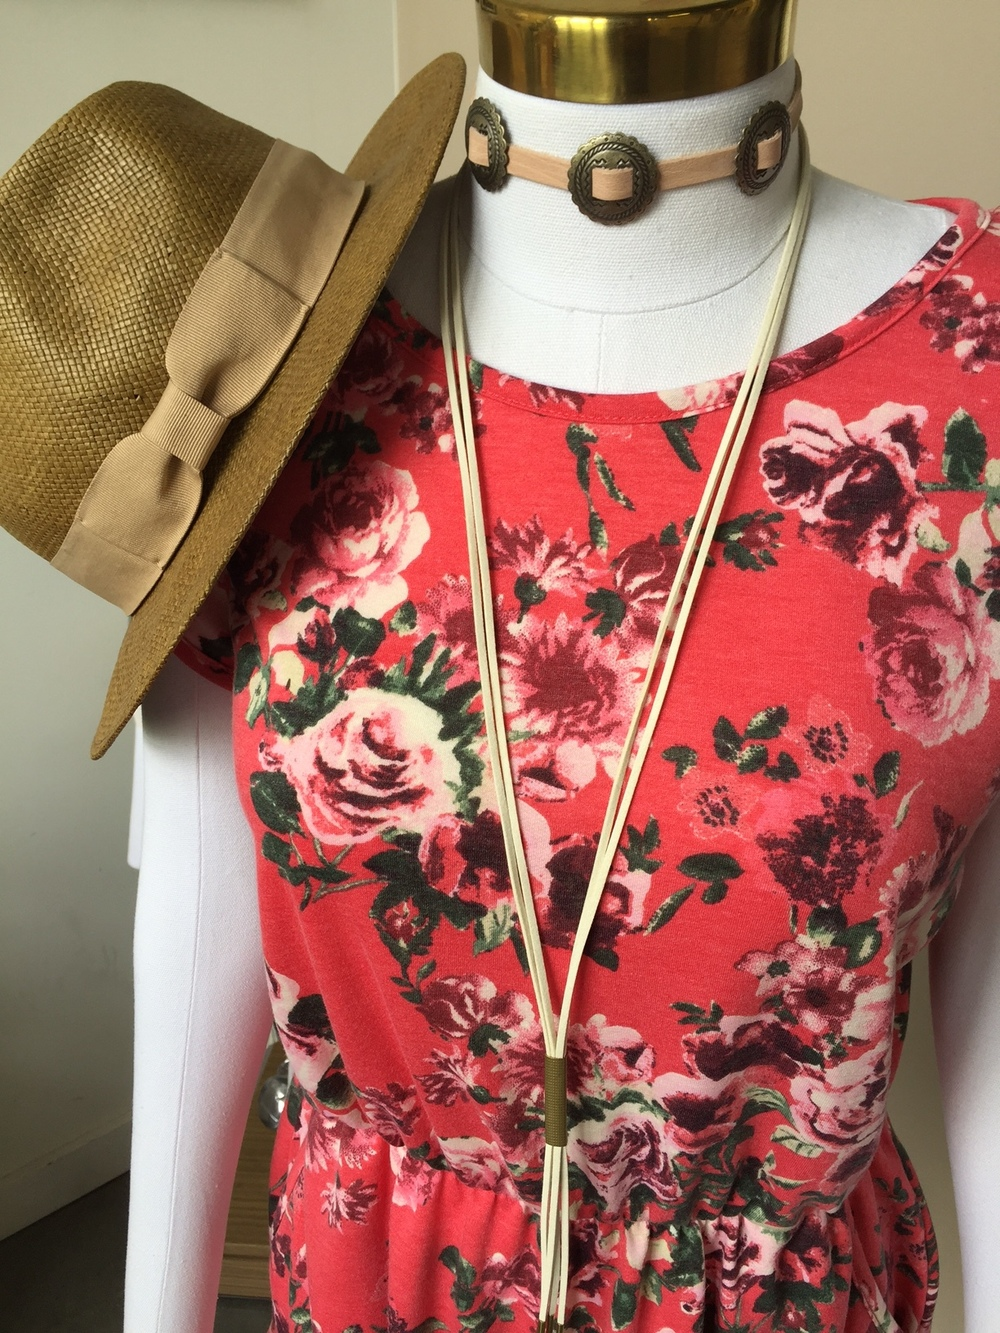 If a bit more color is what you're looking for, try a floral romper with a bolo and western inspired choker.